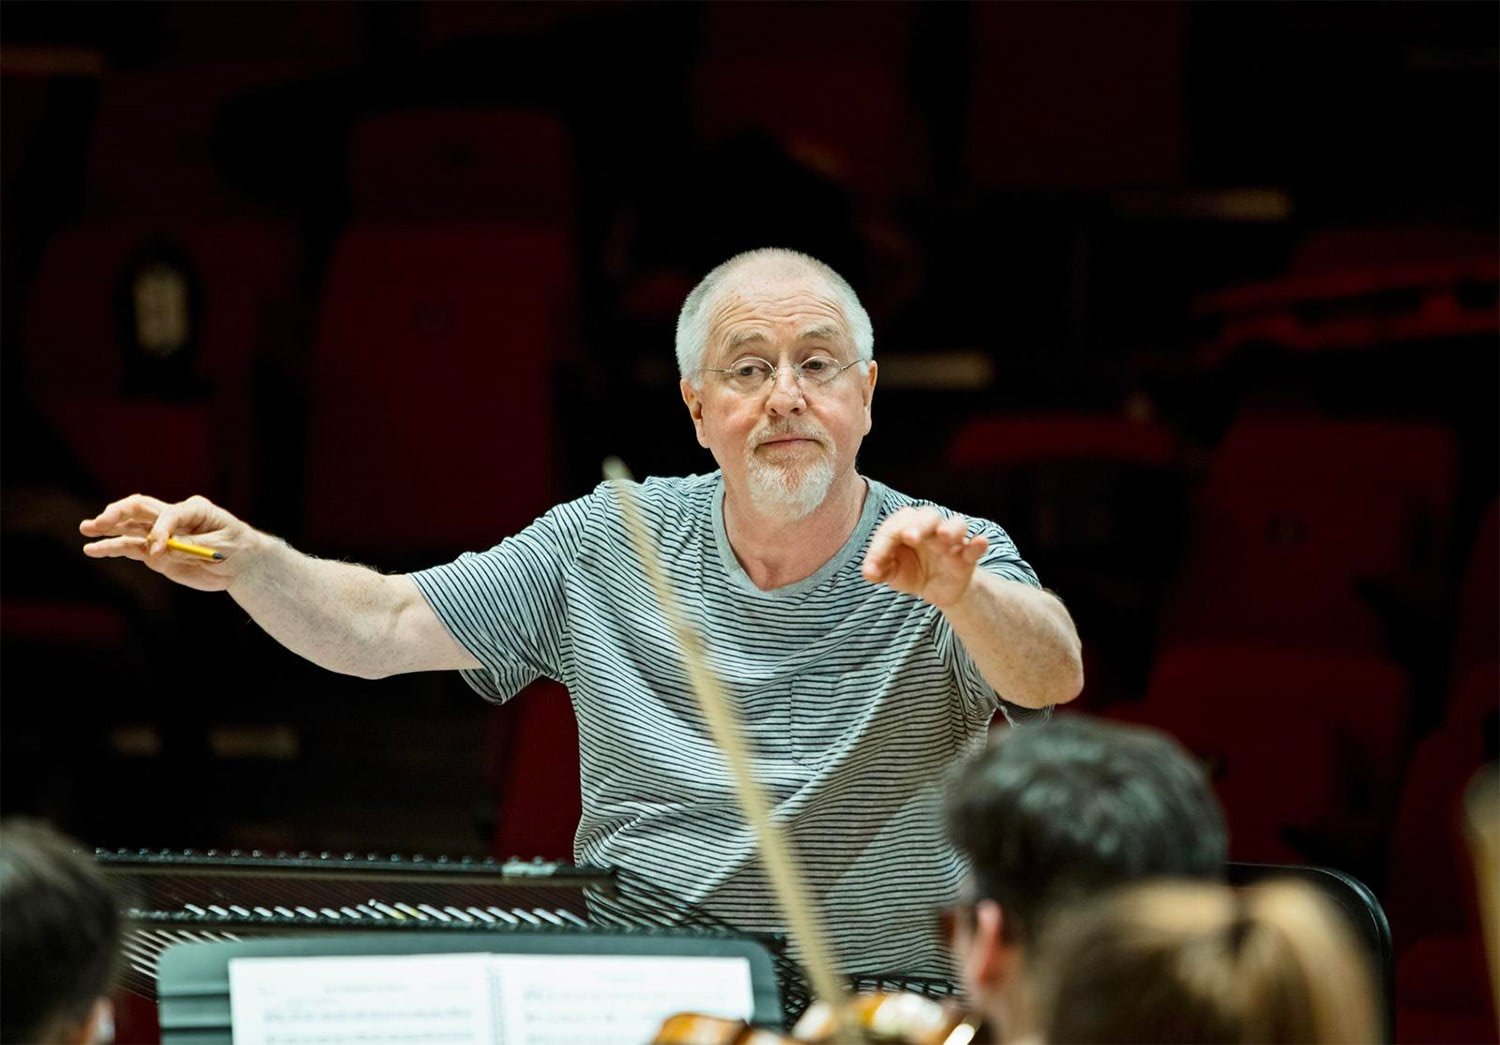 Patrick Doyle conducting